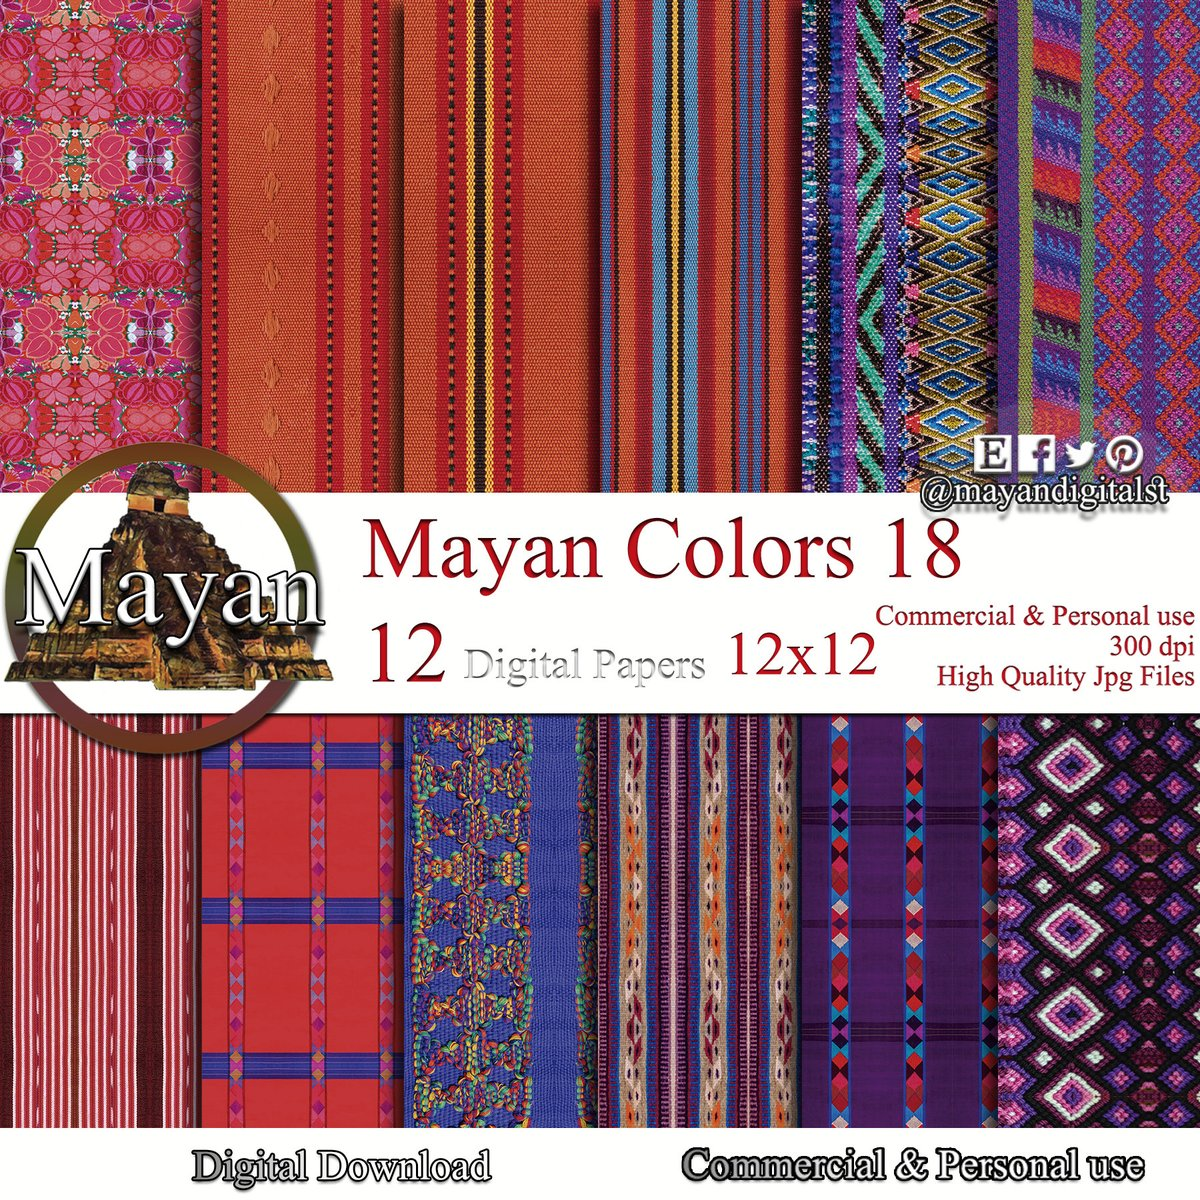 Excited to share the latest addition to my #etsy shop: Mexican digital paper, mexican art, mexican textile art, mexican digital background, mexican textiles, mexican blanket, mexican fabric print  #orange #birthday #people #purple #mexican #mexic